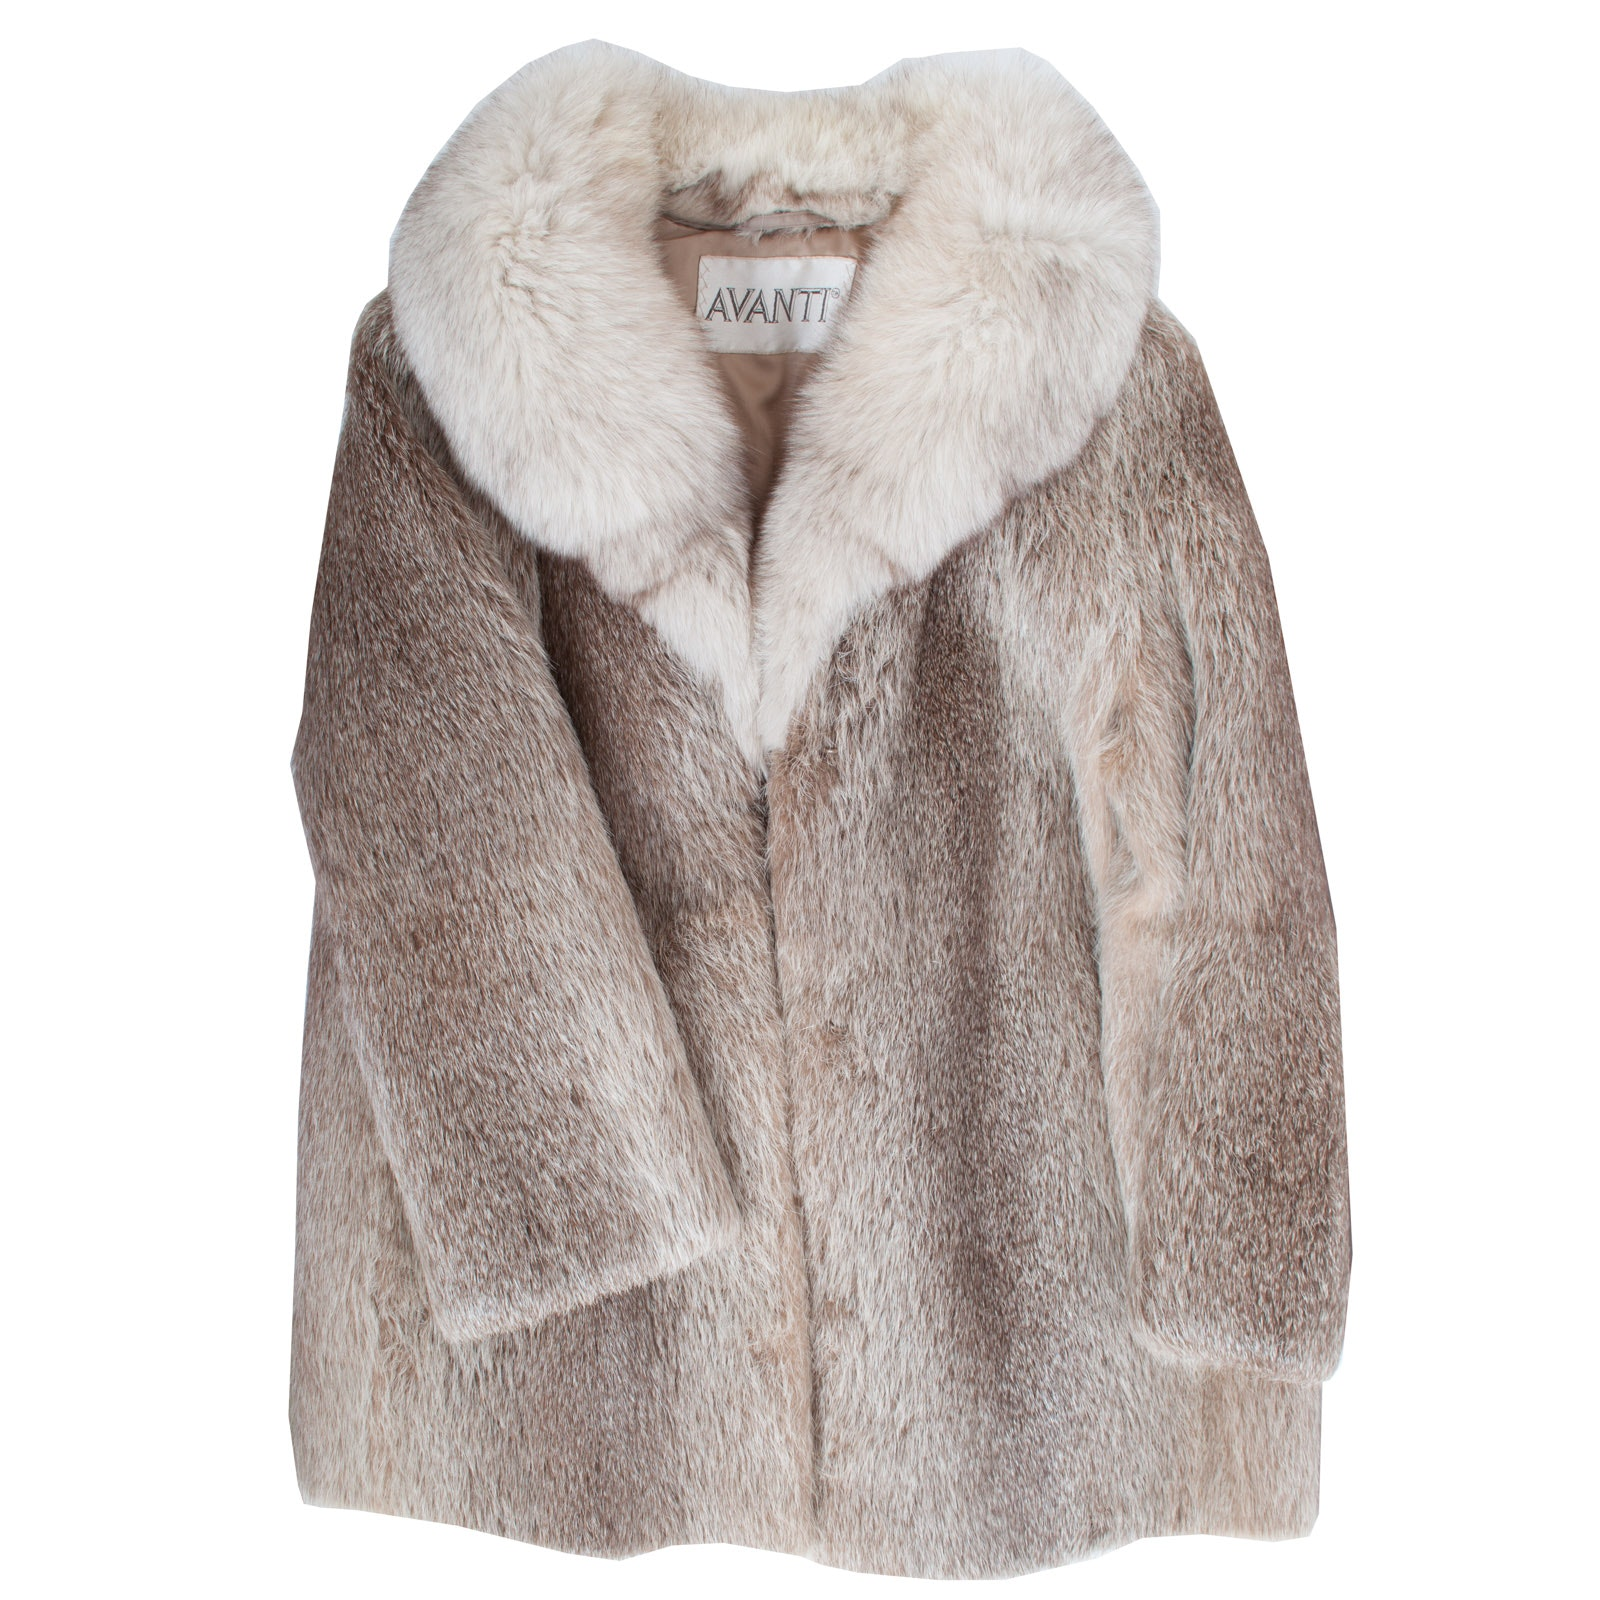 Avanti Fox Fur Collar and Deer Fur Project Coat